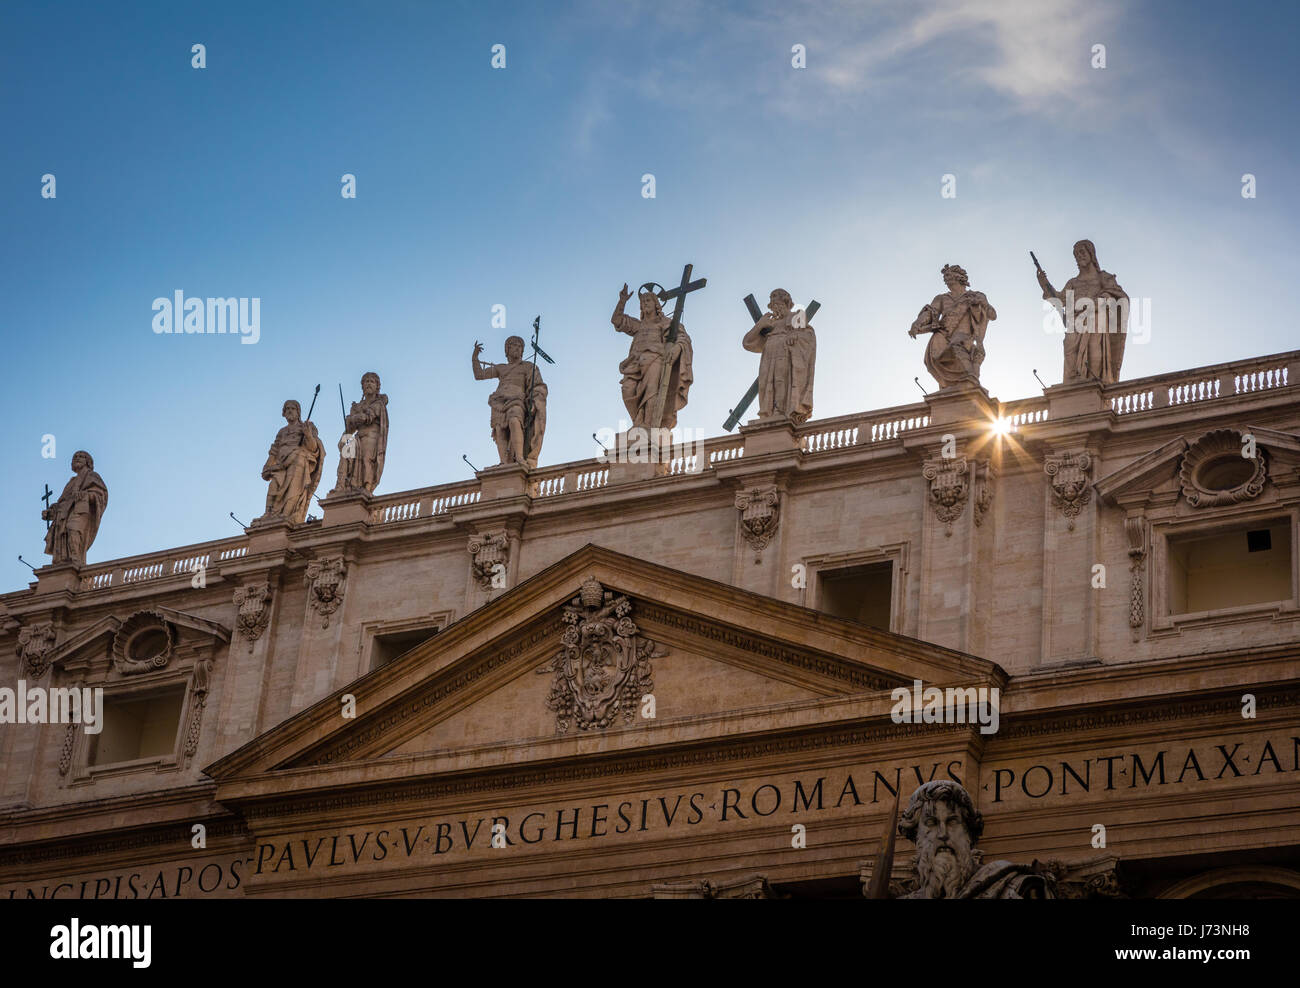 The Papal Basilica of Saint Peter, commonly known as St. Peter's Basilica - Stock Image